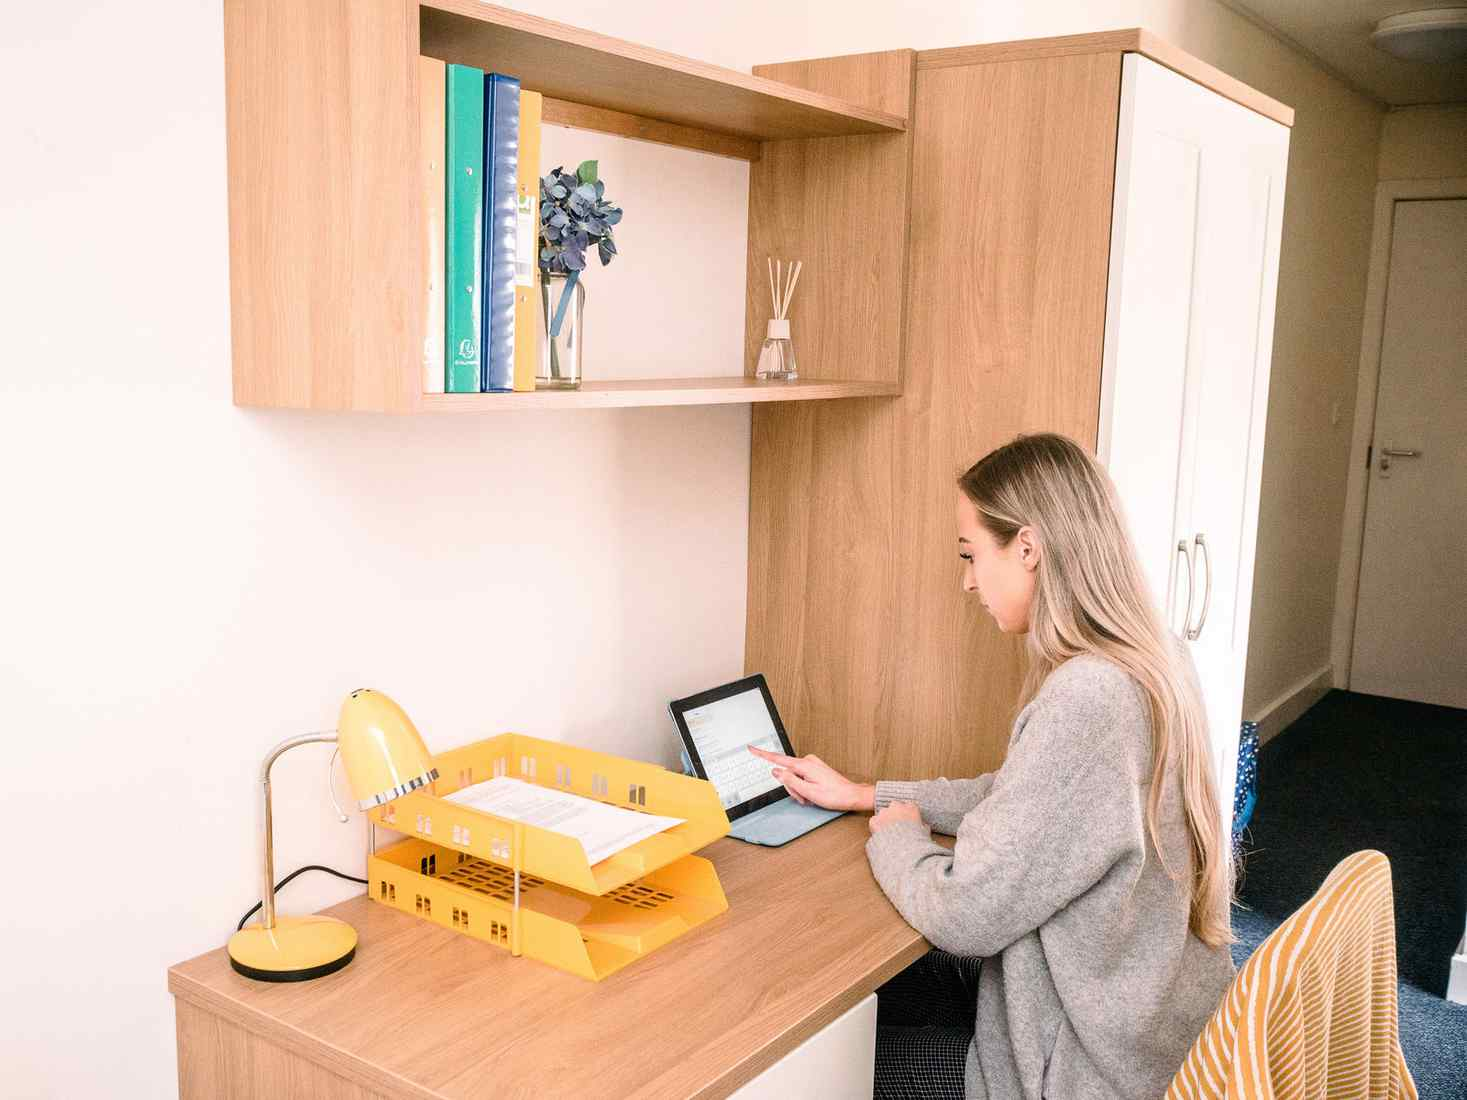 A student sits at a desk in a Garden Street standard ensuite room. There is a wardrobe next to the desk and shelving above.